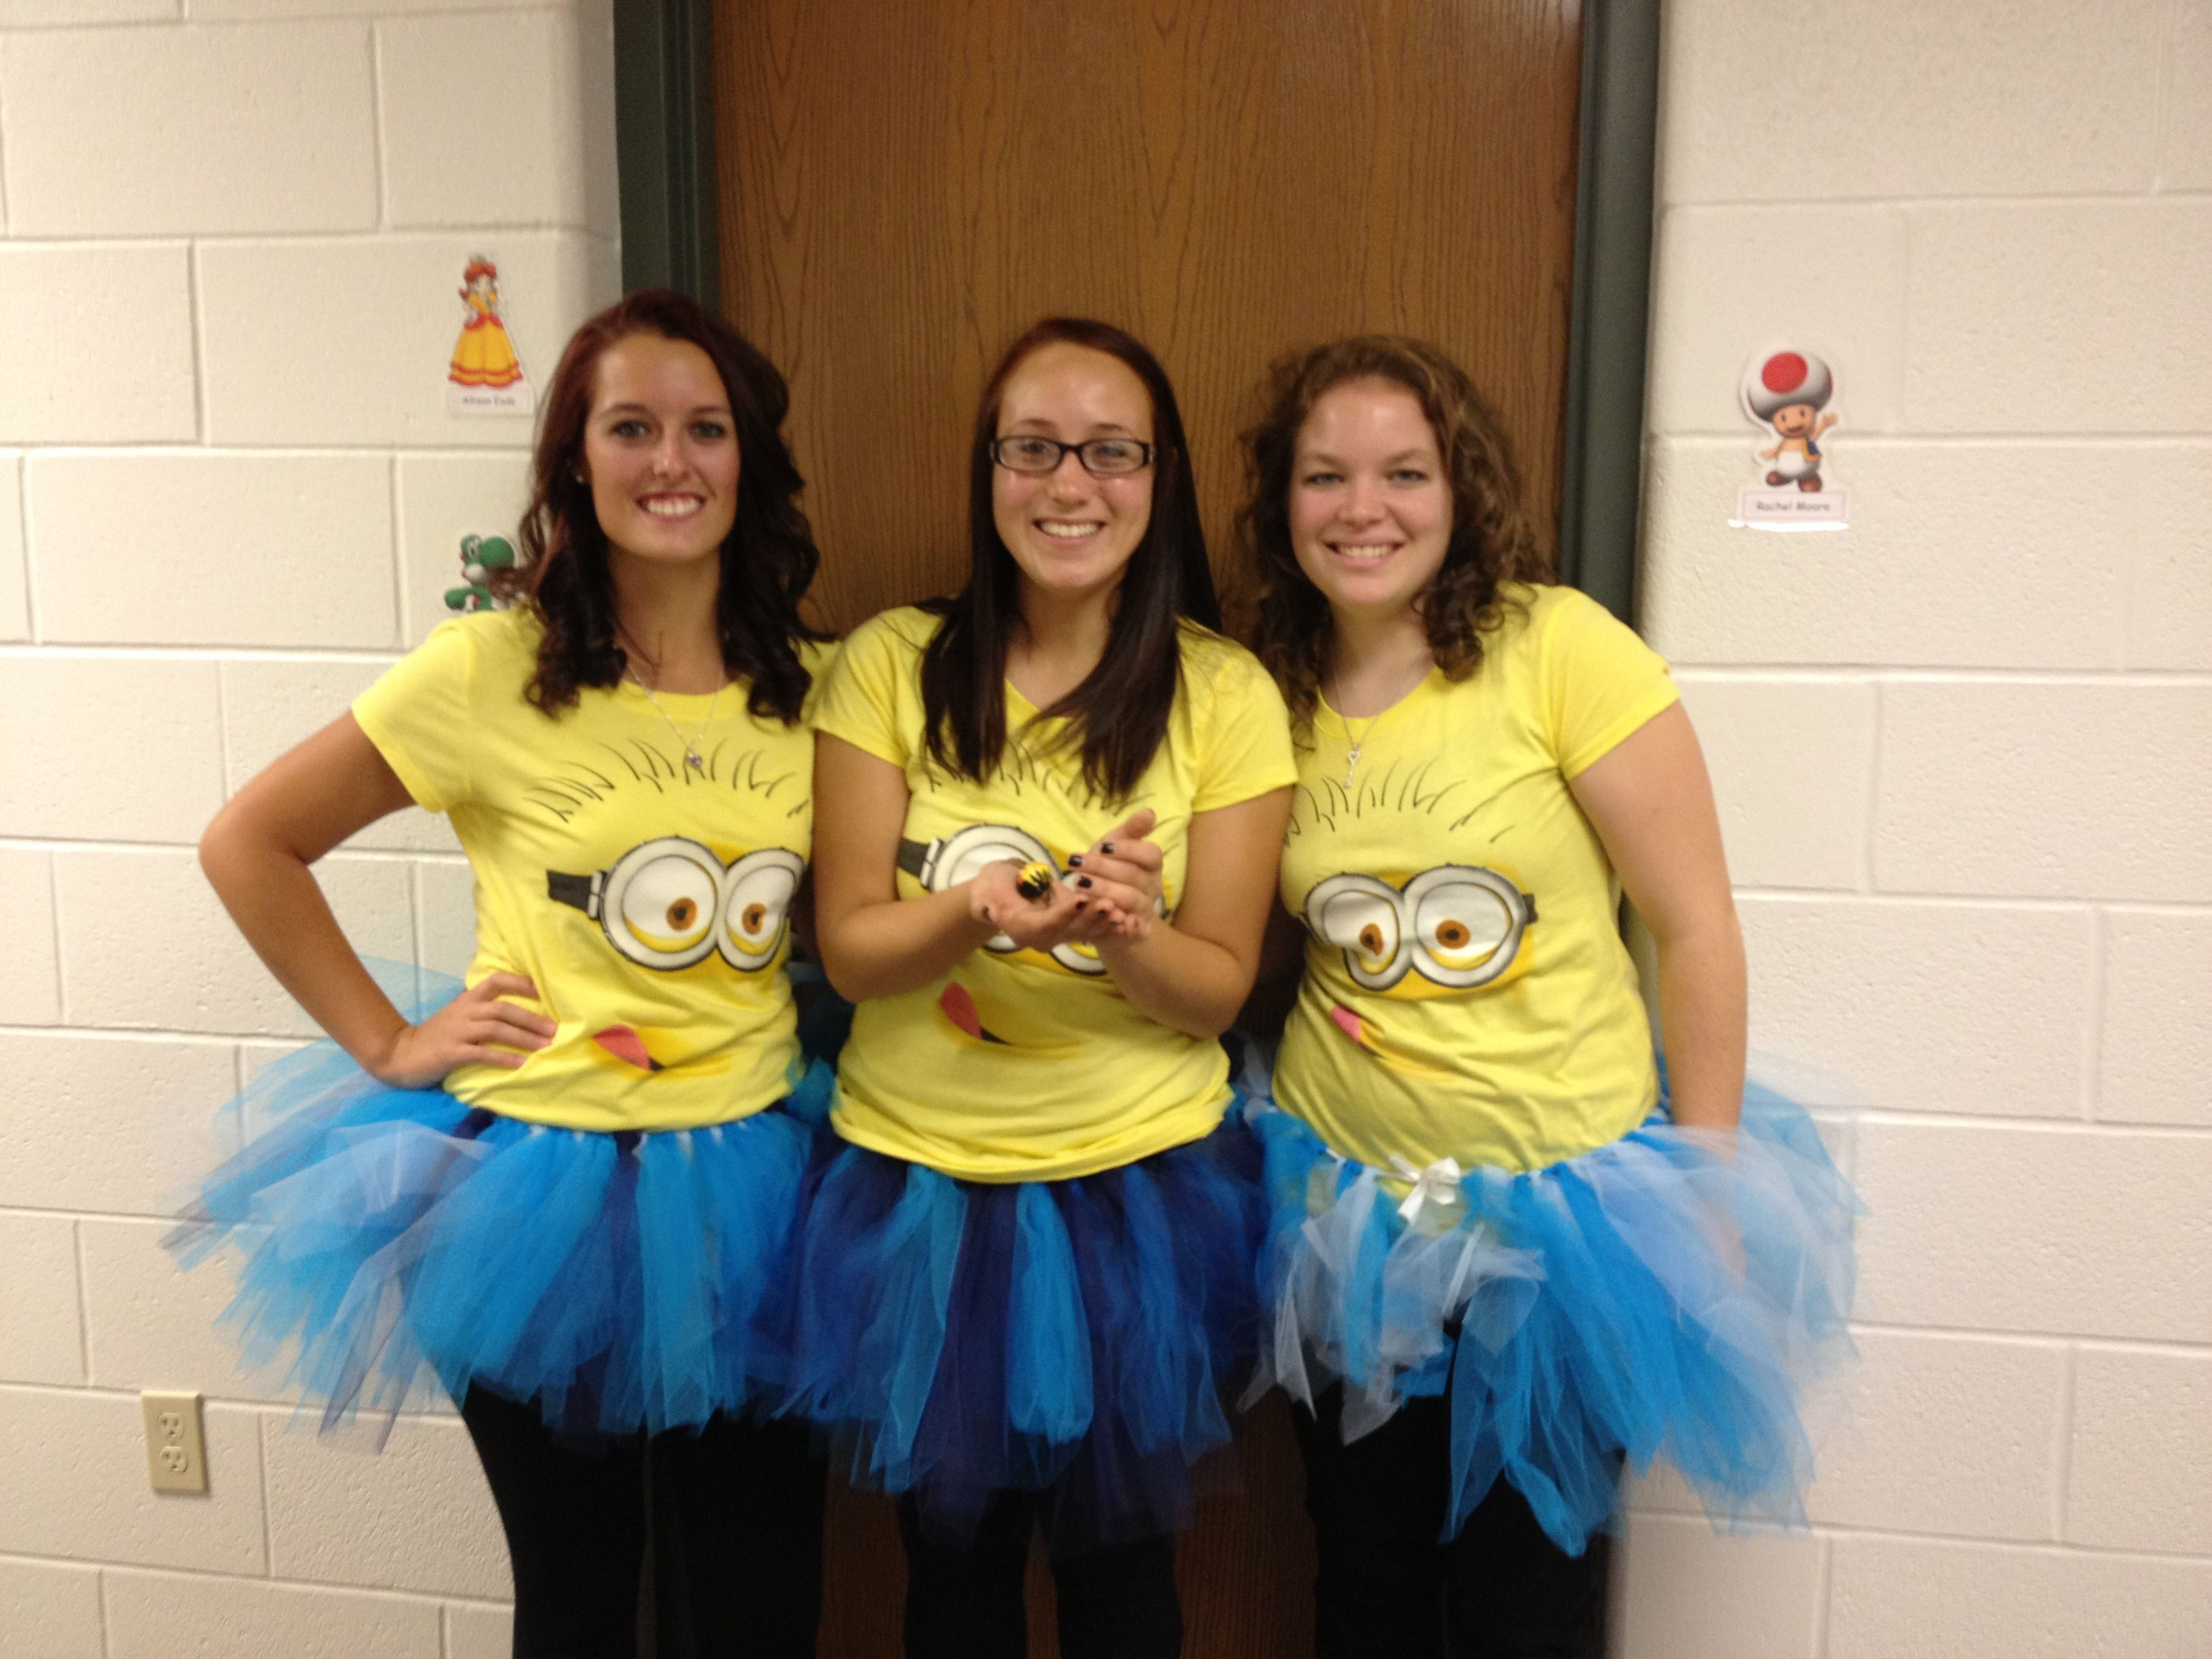 minions costume for halloween for our three girls ages 19mo 7 10 - Halloween Costumes Three Girls